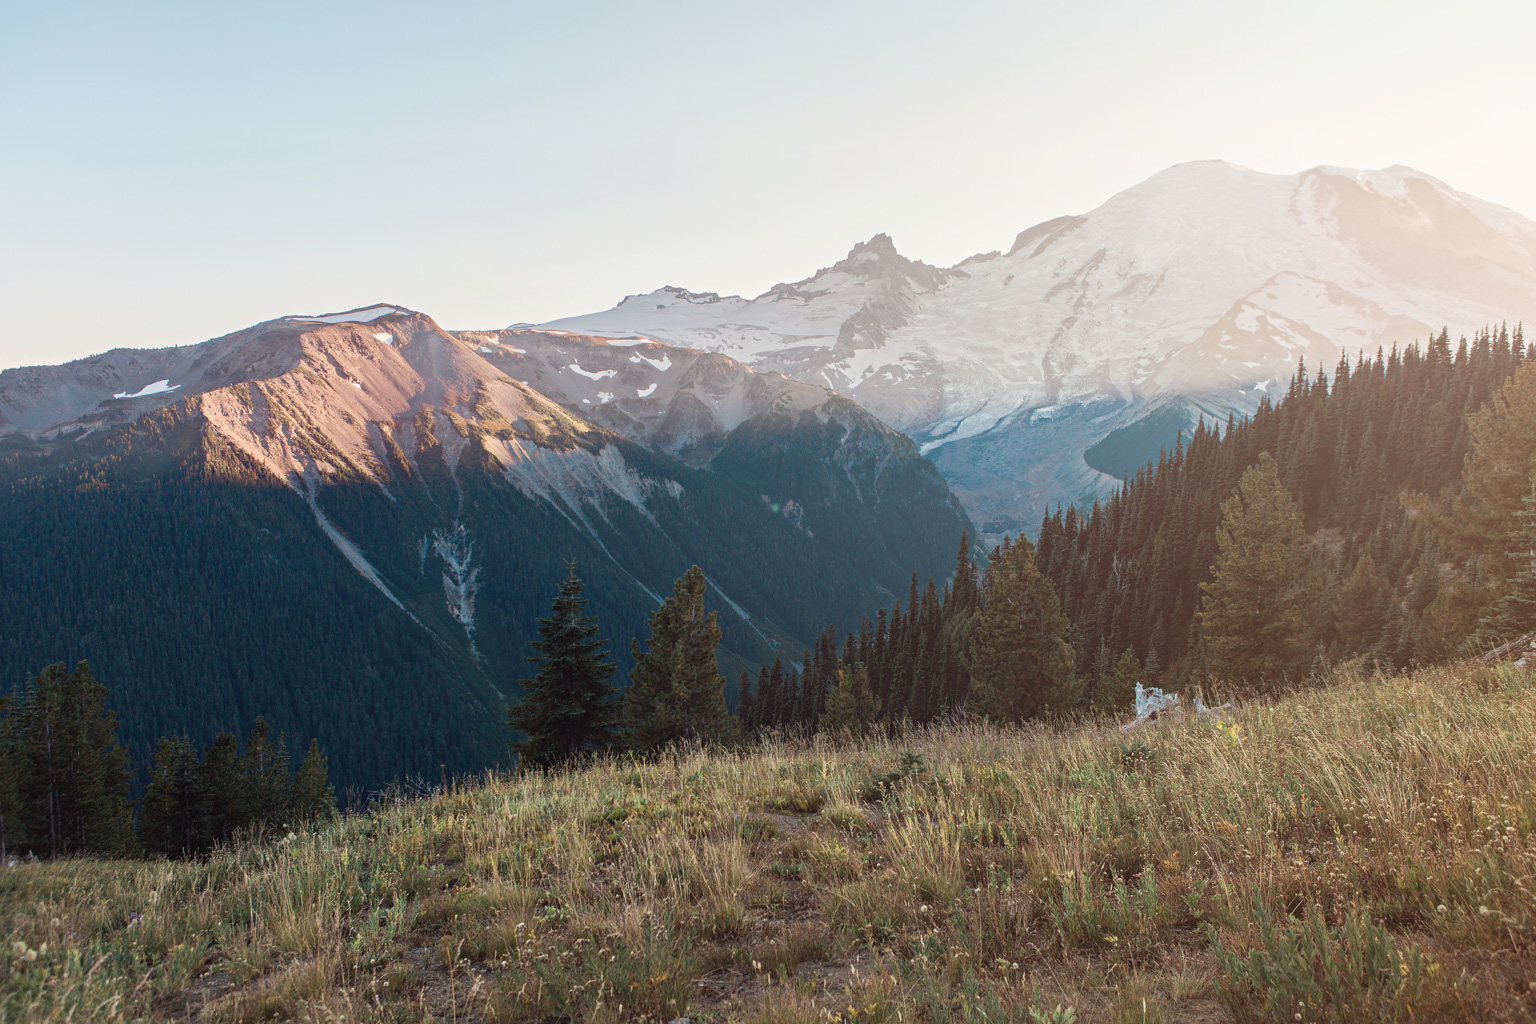 CindyGiovagnoli_Mount_Rainier_National_Park_Washington-026.jpg